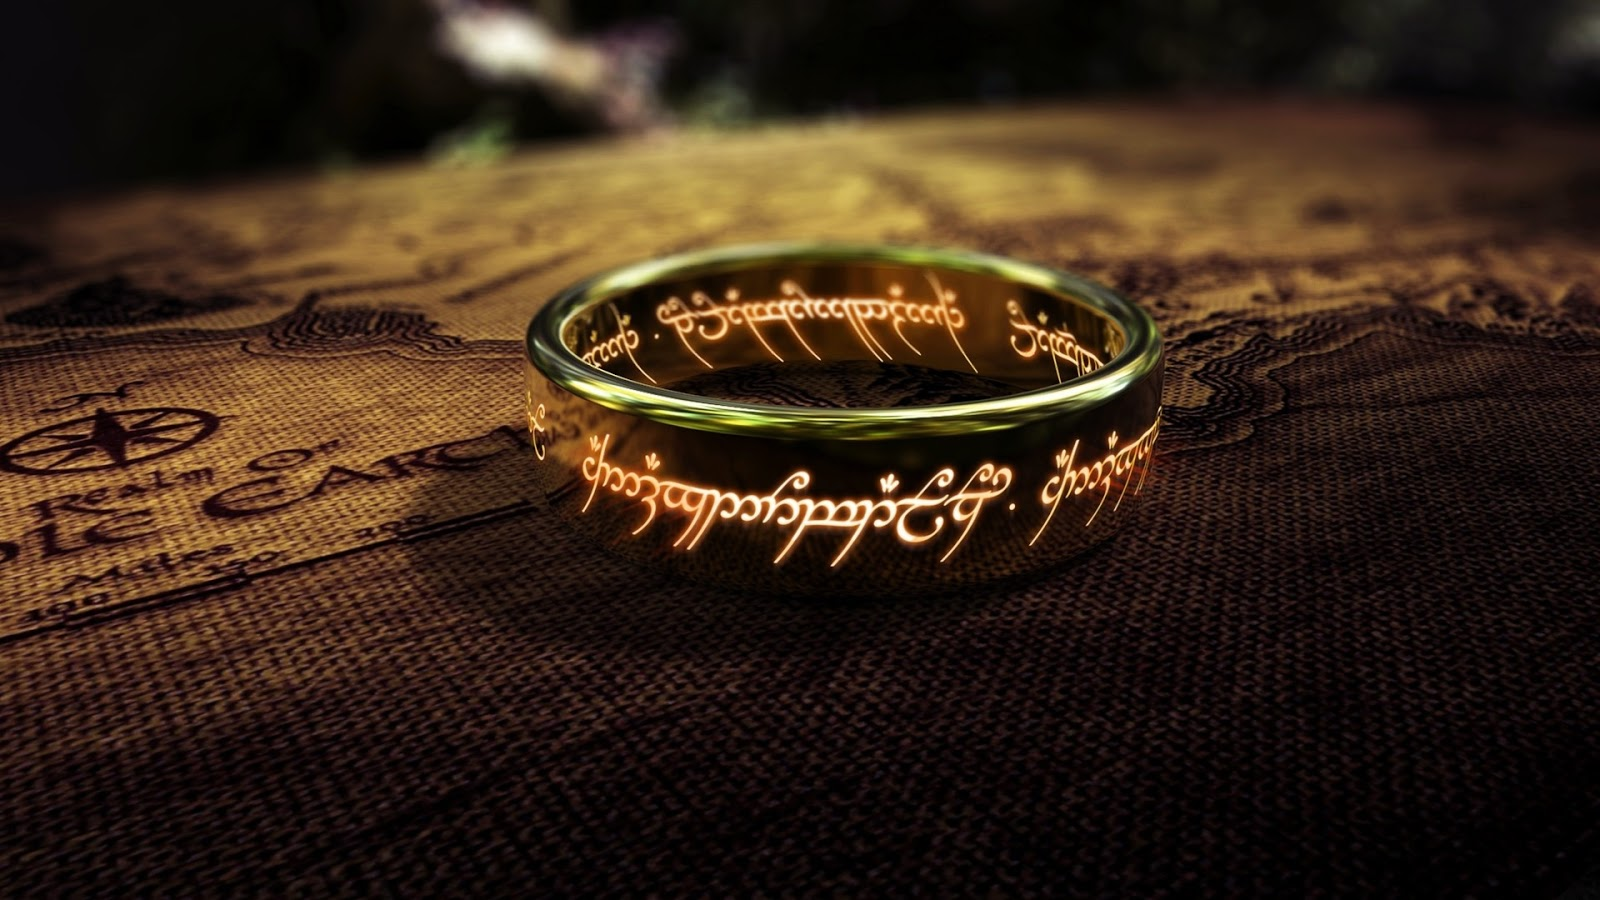 The Lord Of The Rings Wallpaper Covers Heat 1600x900